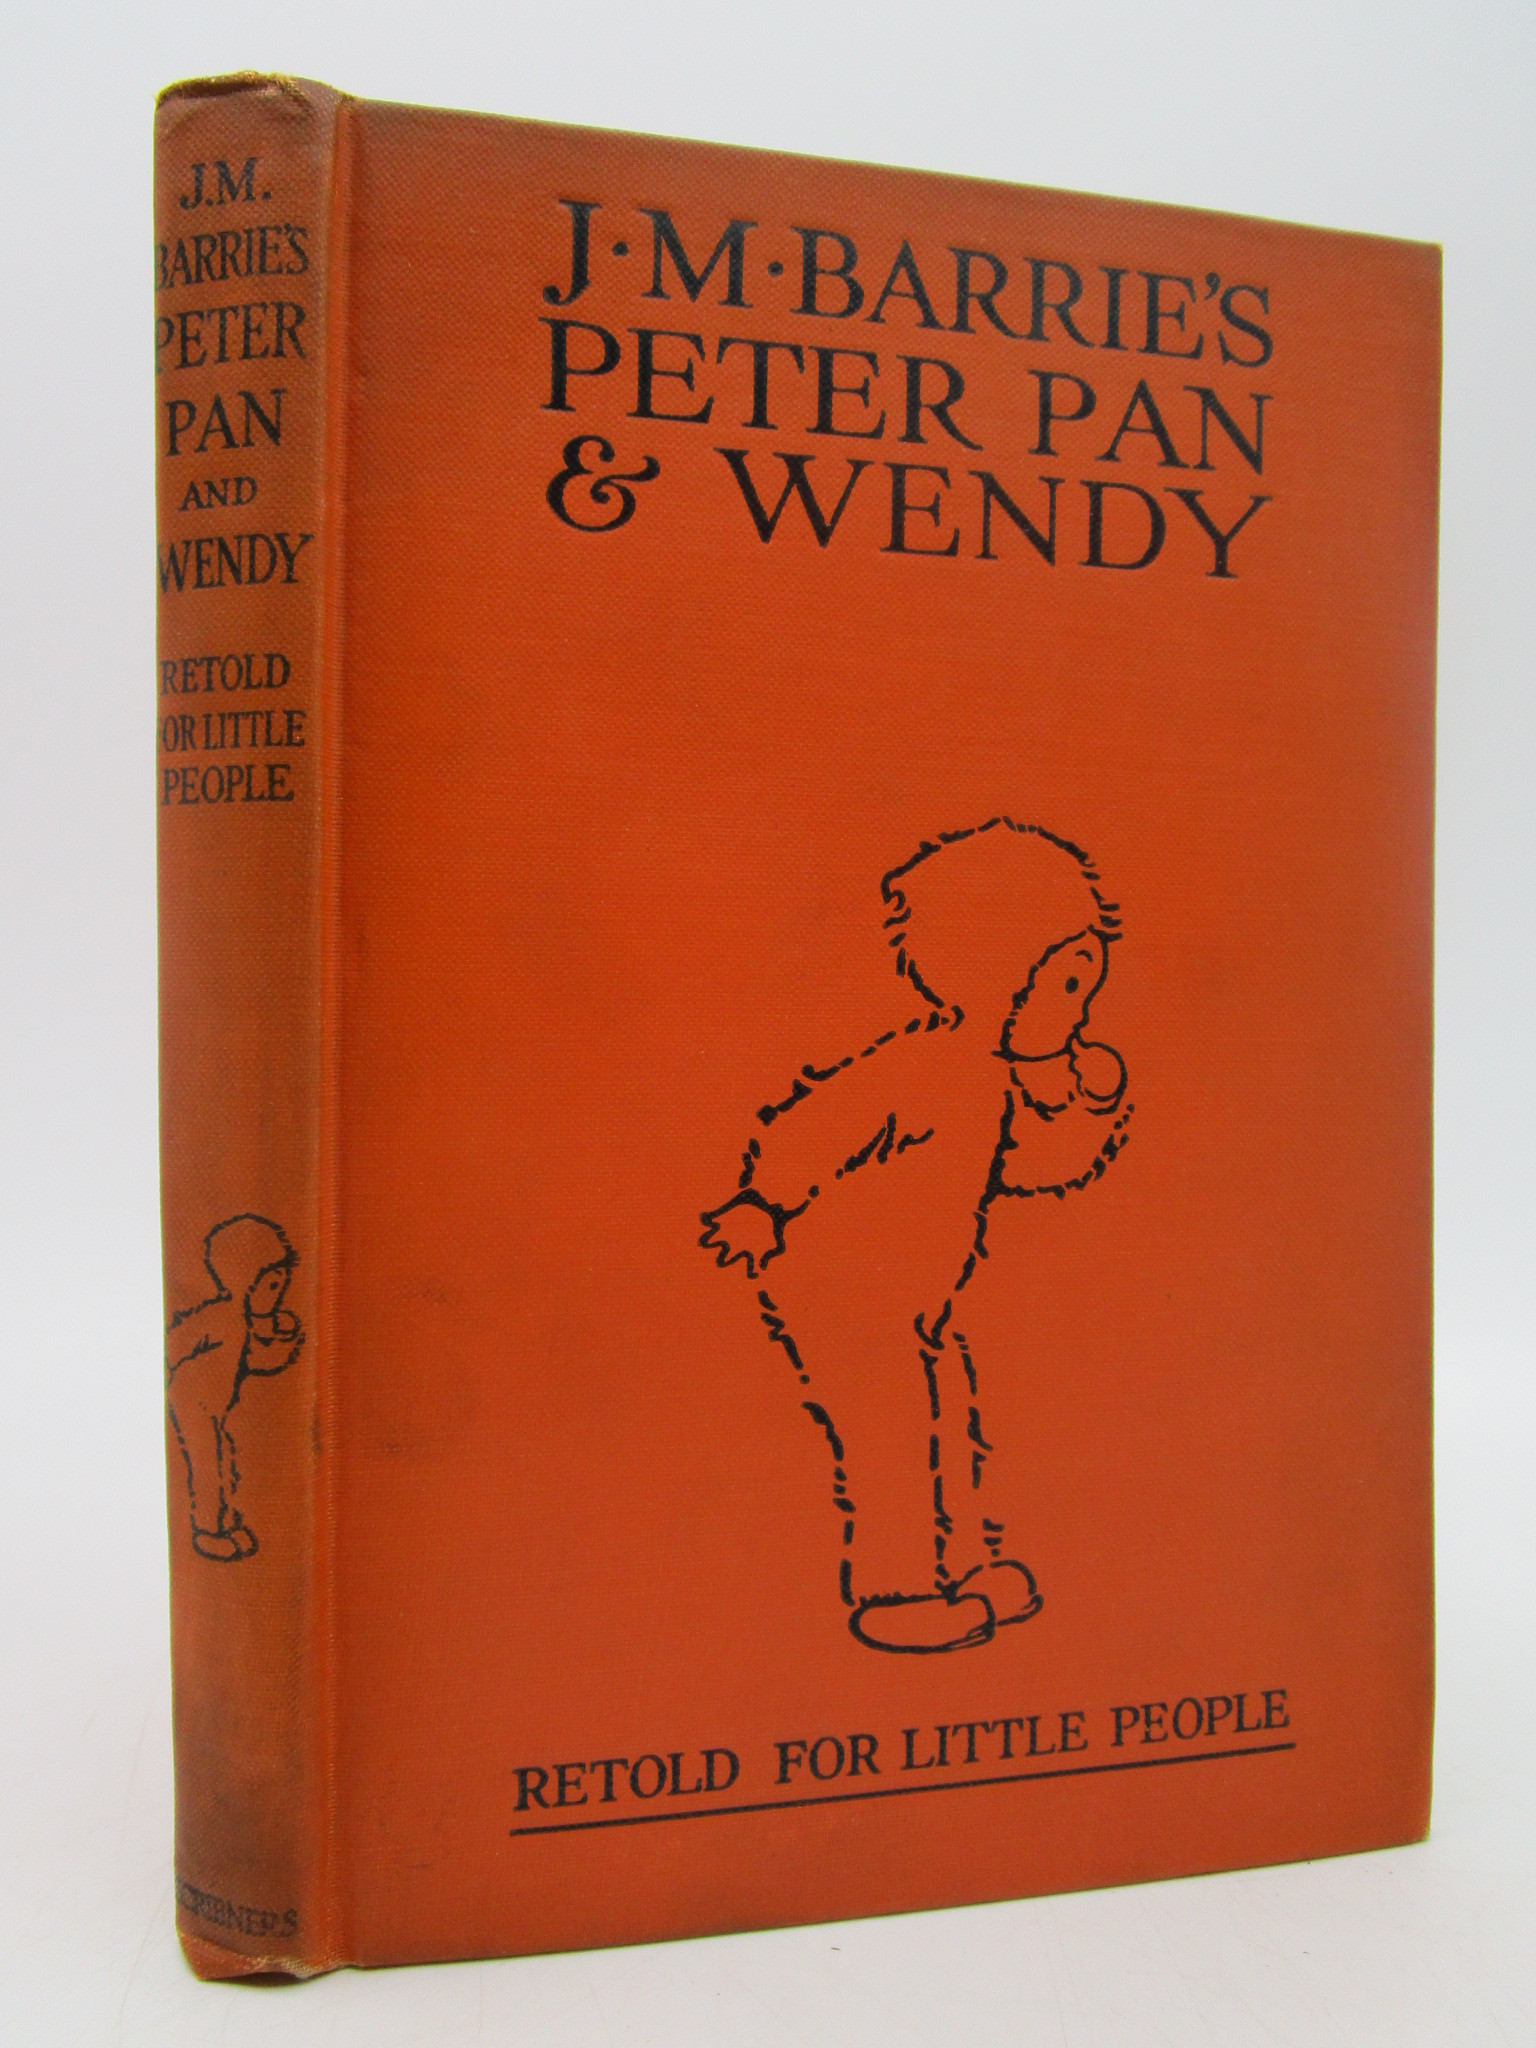 Image for J. M. Barrie's Peter Pan & Wendy retold for little people